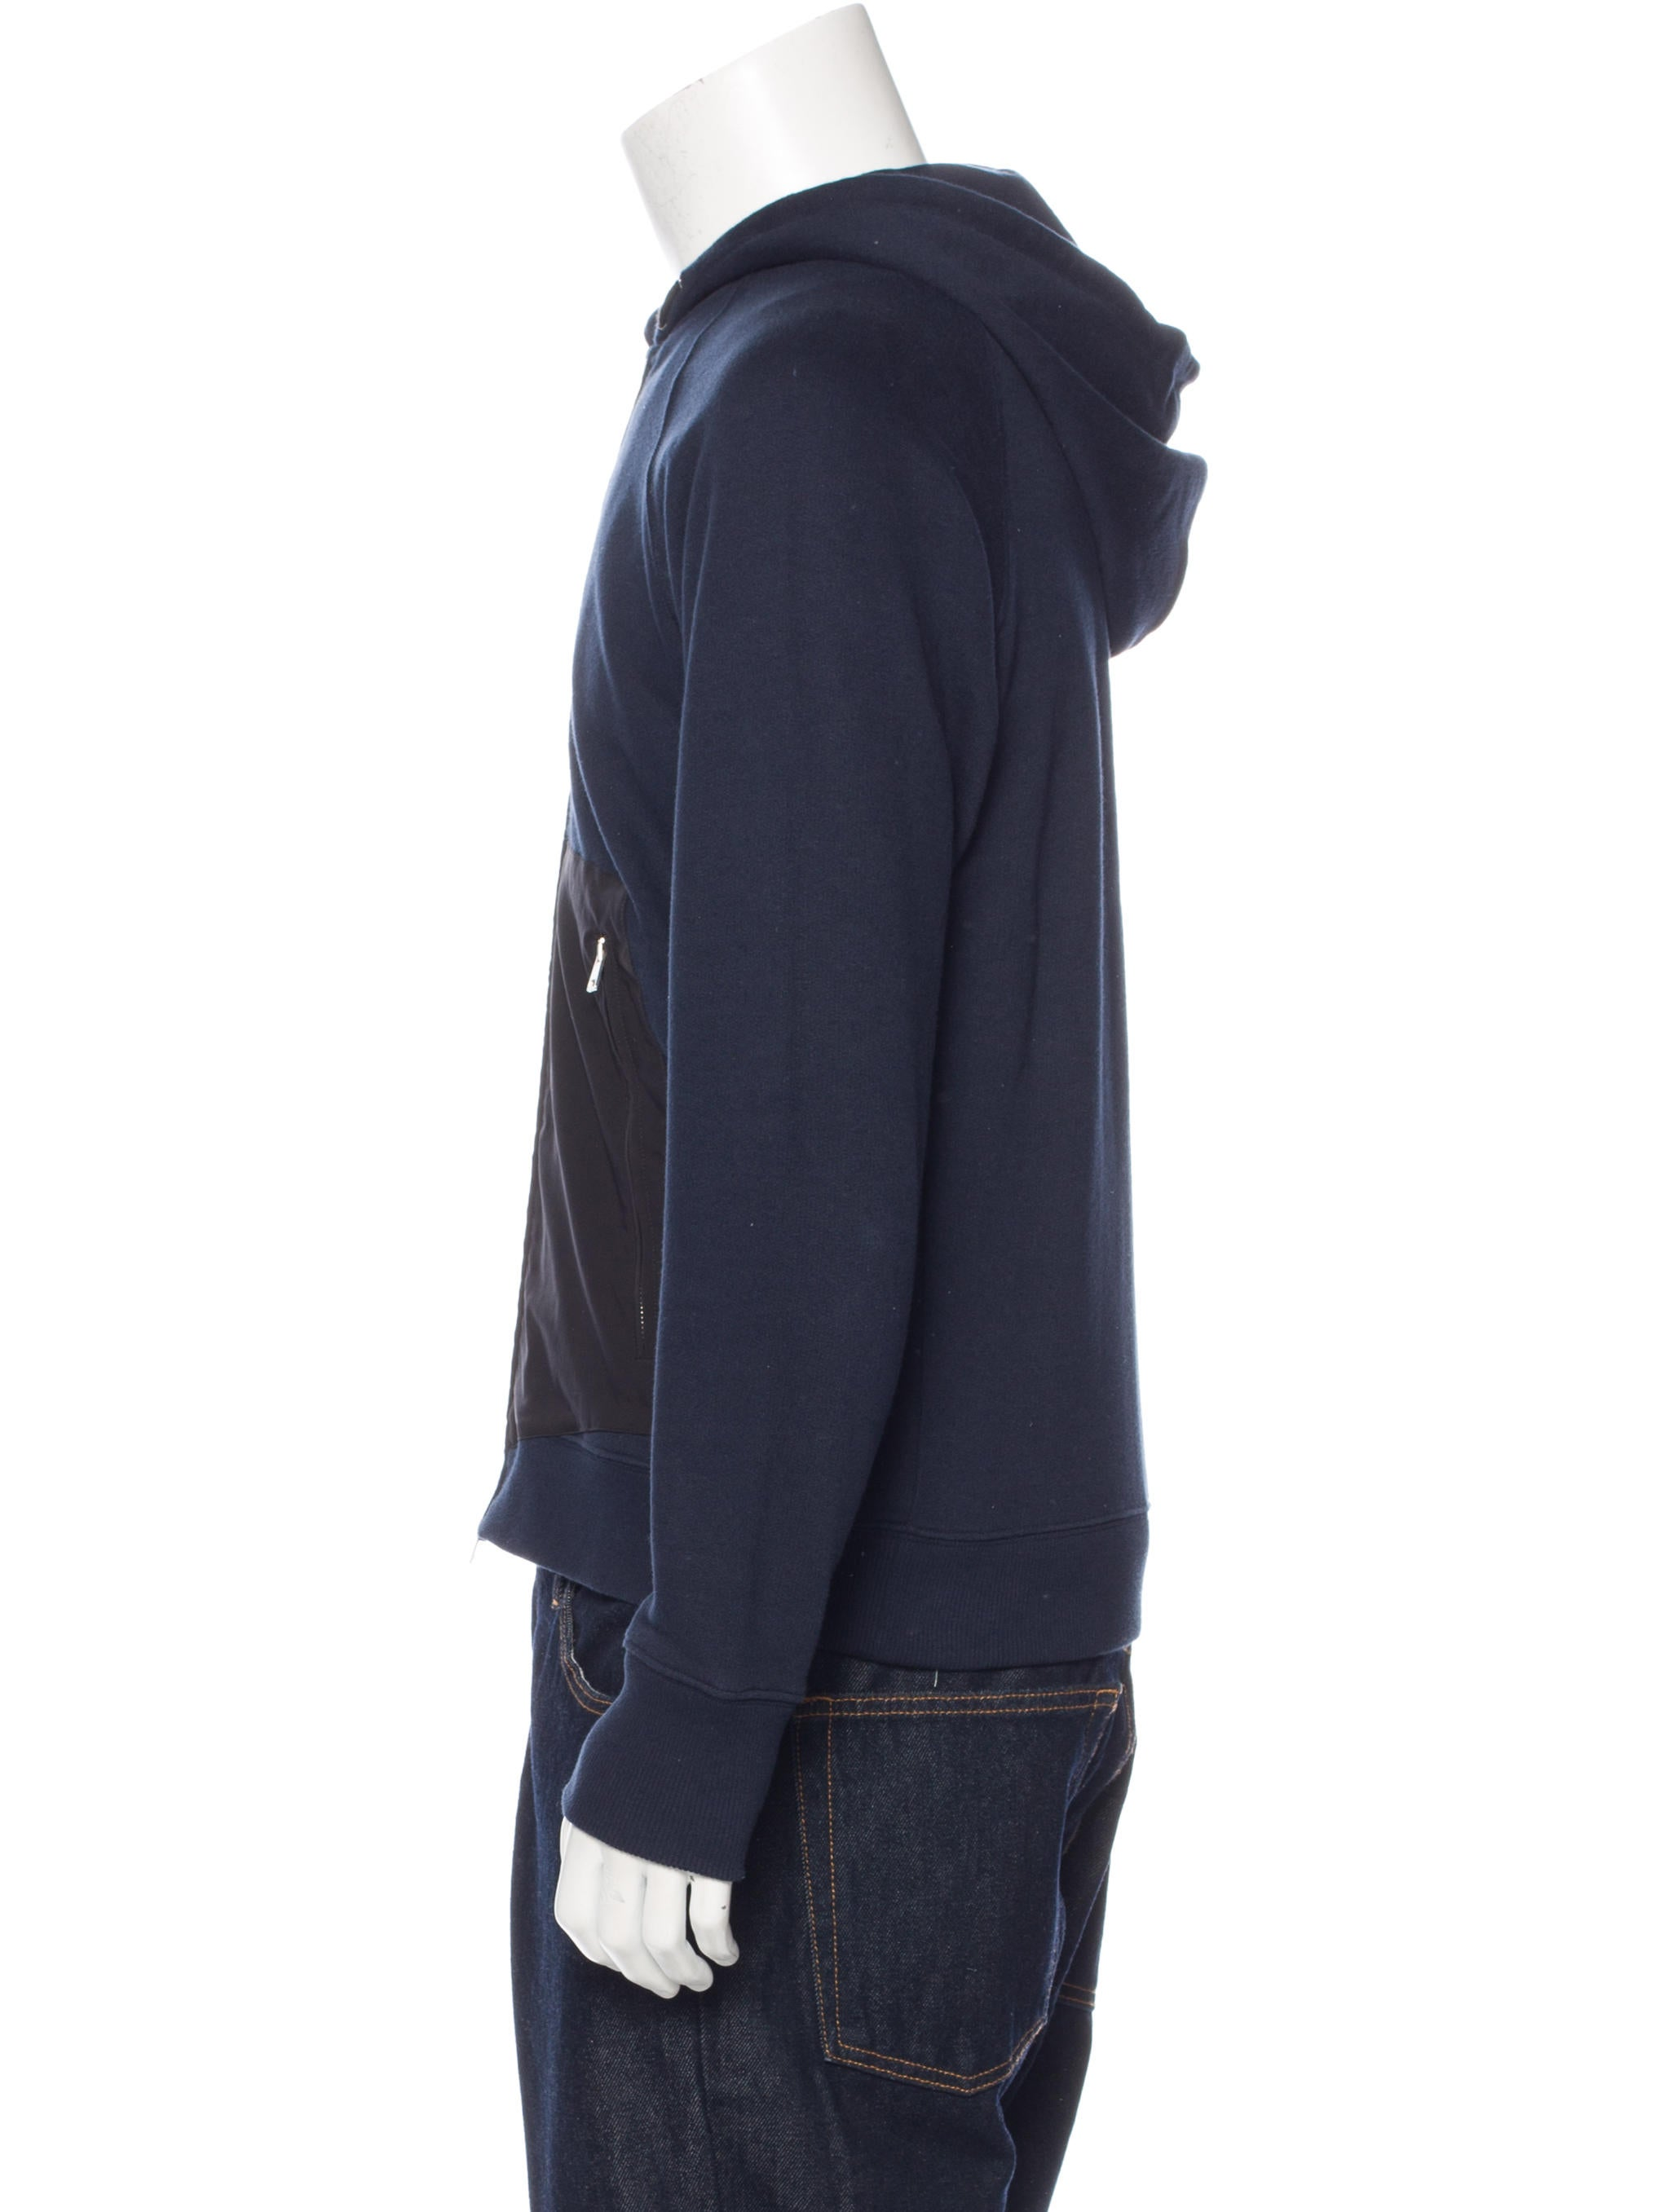 Marni Knit Zip Hoodie - Clothing - MAN58002 The RealReal